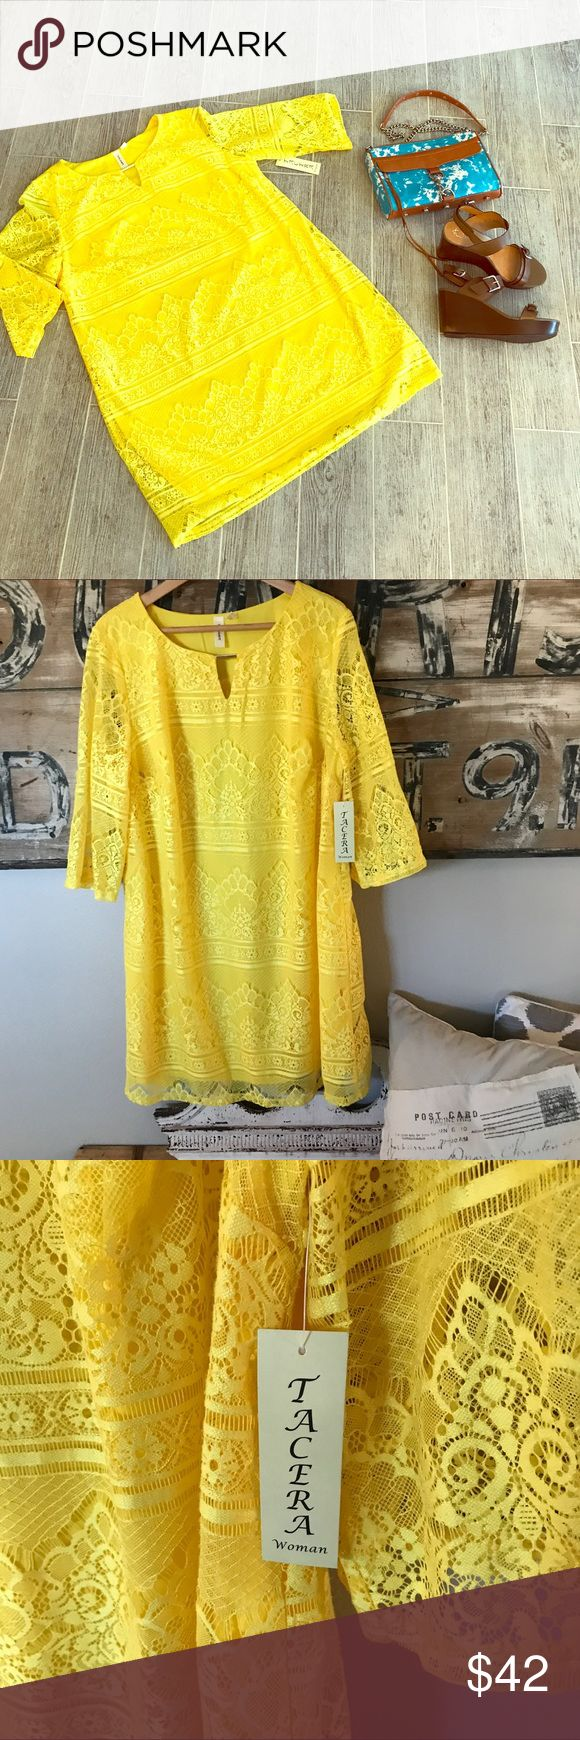 🎉final price drop🎉NWT yellow lace plus dress Brand new! Summer ready! On trend! Dresses Long Sleeve